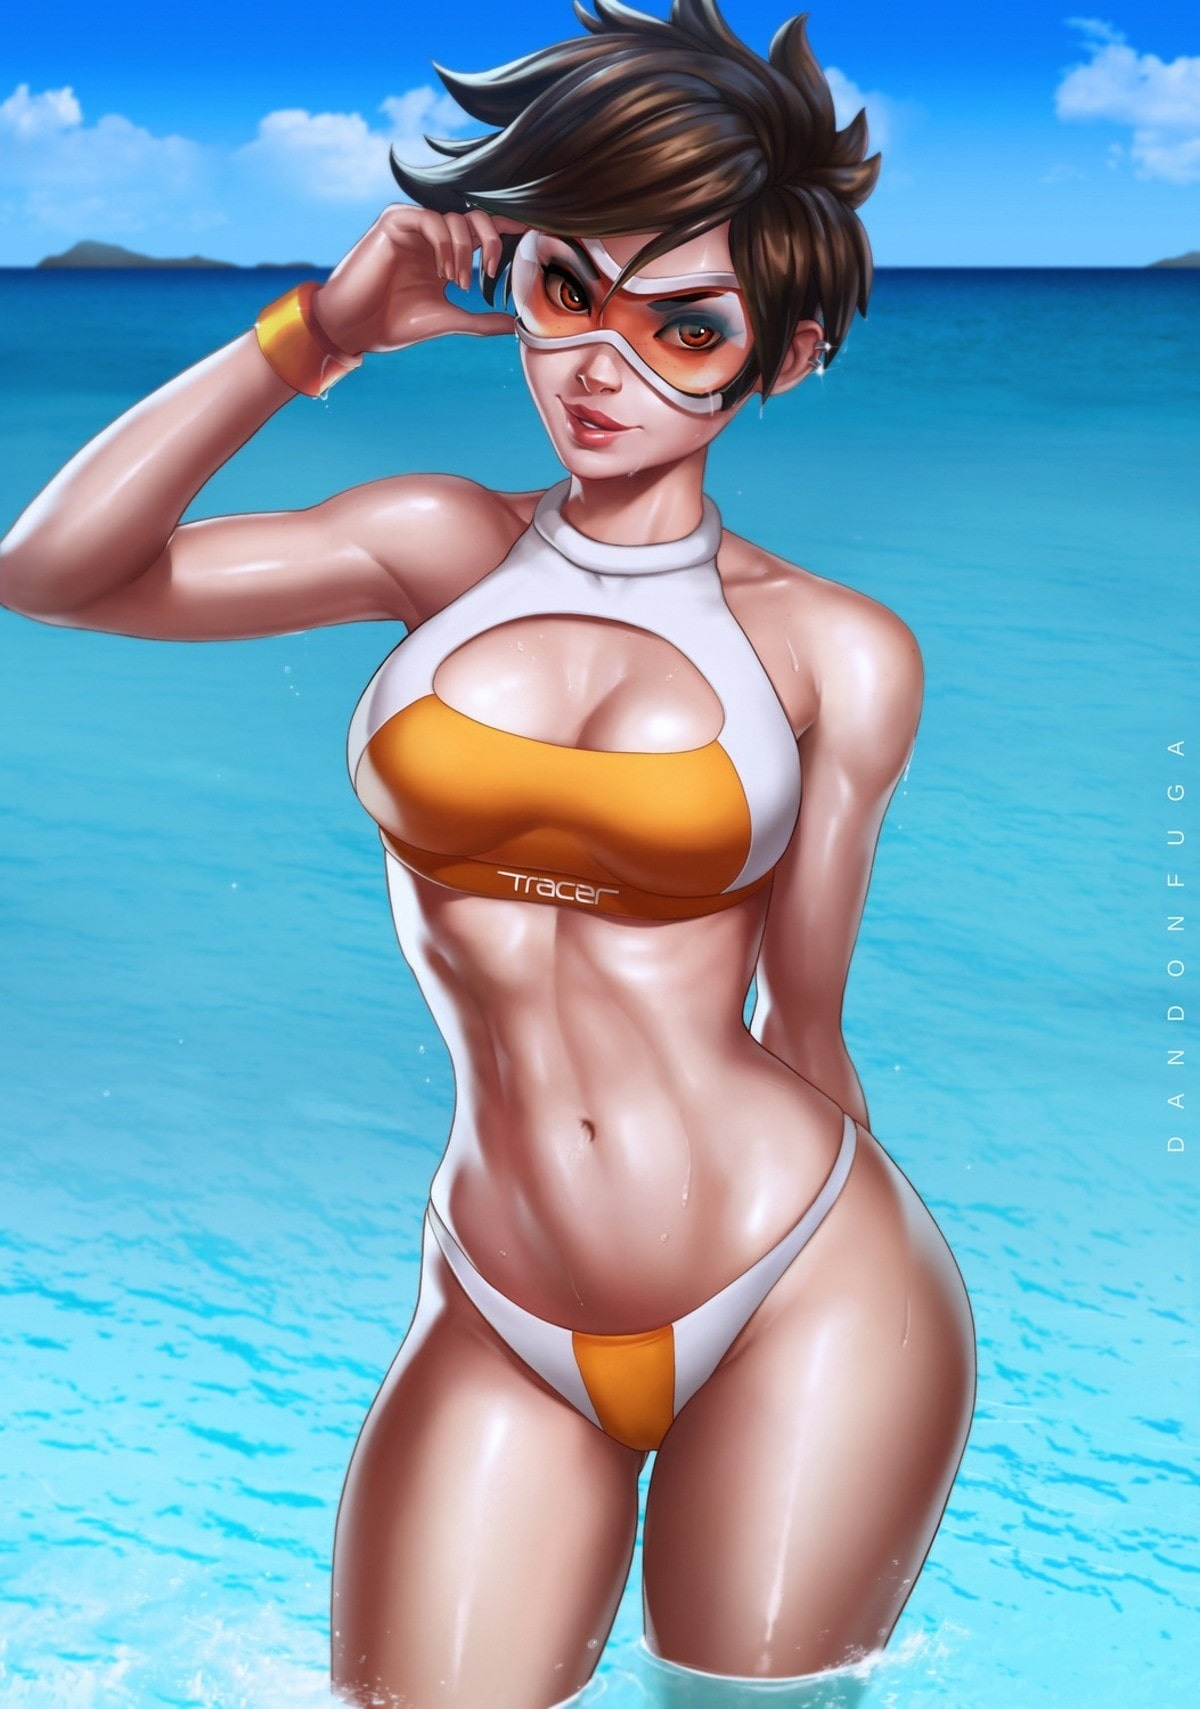 tracer looking hot